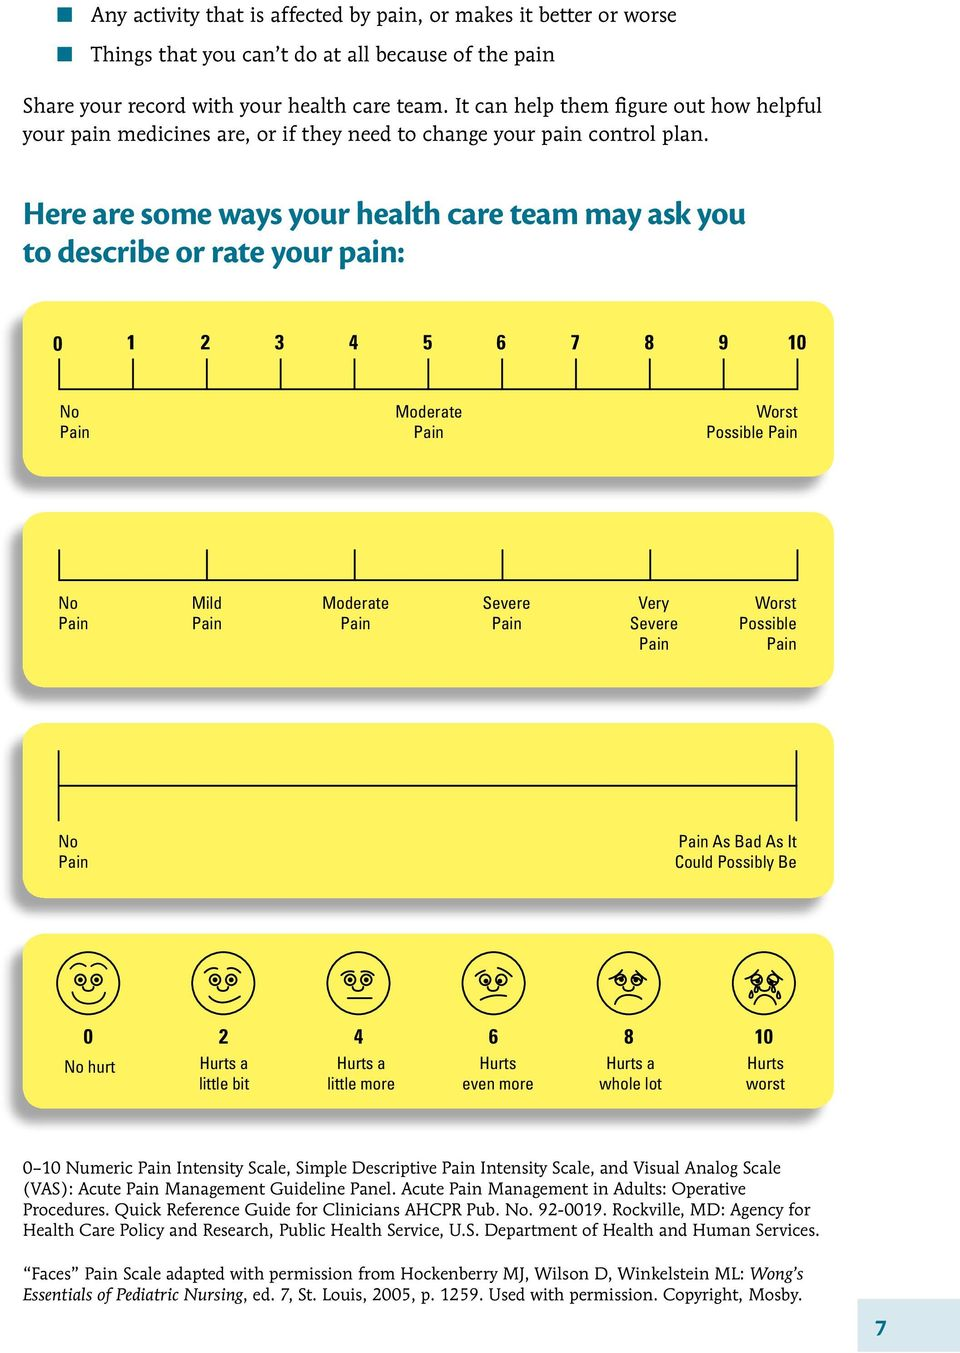 Here are some ways your health care team may ask you to describe or rate your pain: 0 1 2 3 4 5 6 7 8 9 10 No Pain Moderate Pain Worst Possible Pain No Pain Mild Pain Moderate Pain Severe Pain Very